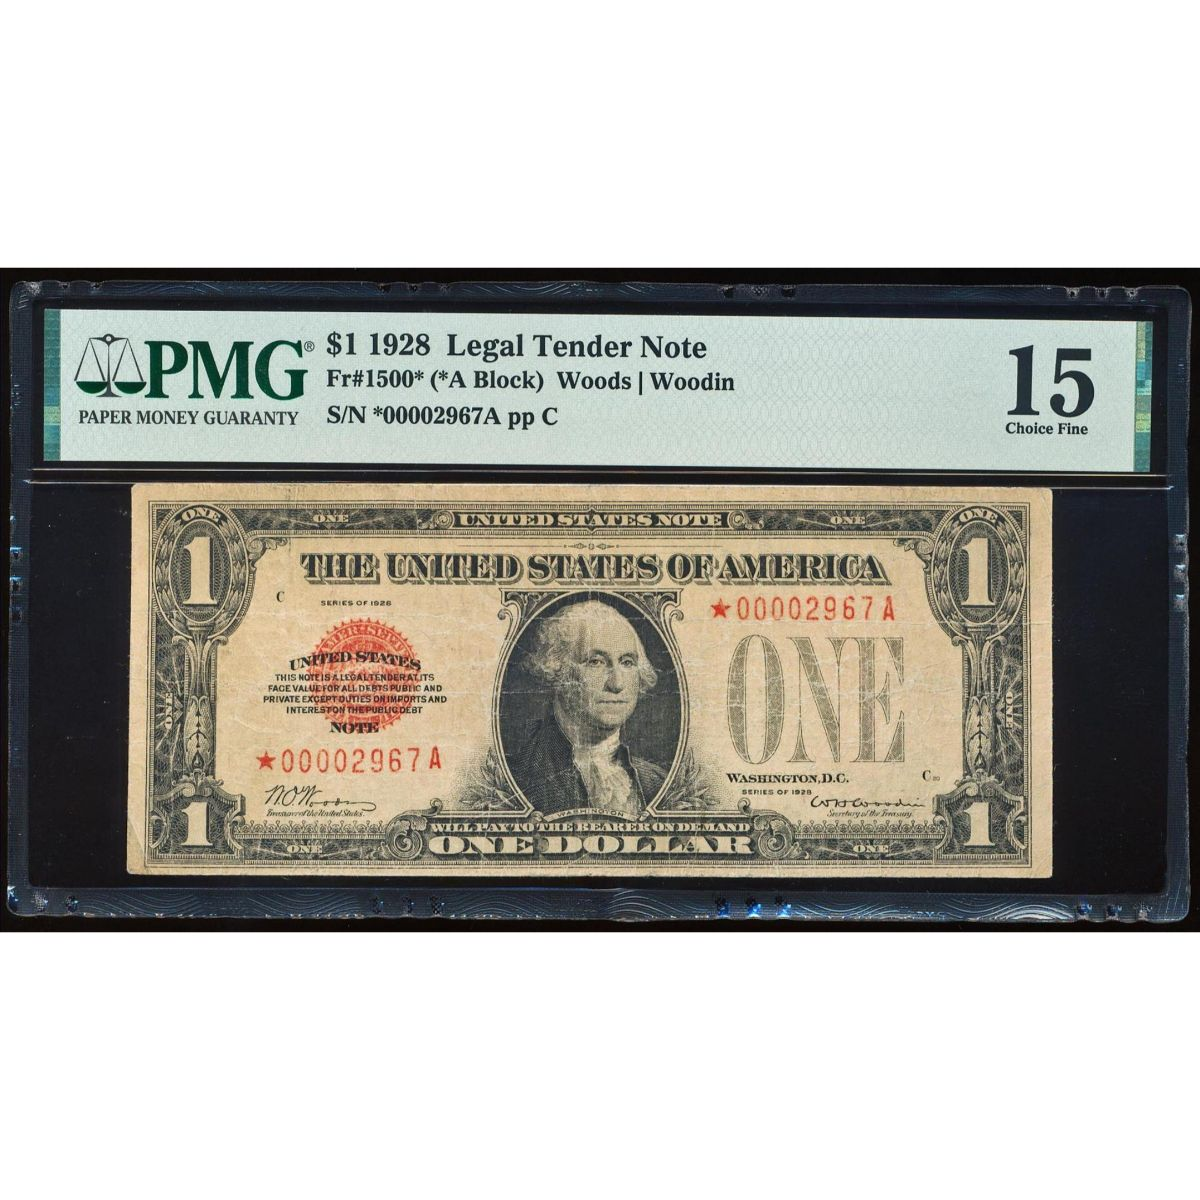 BK Auctions – Gold Coins, Currency, Fine Art & More!